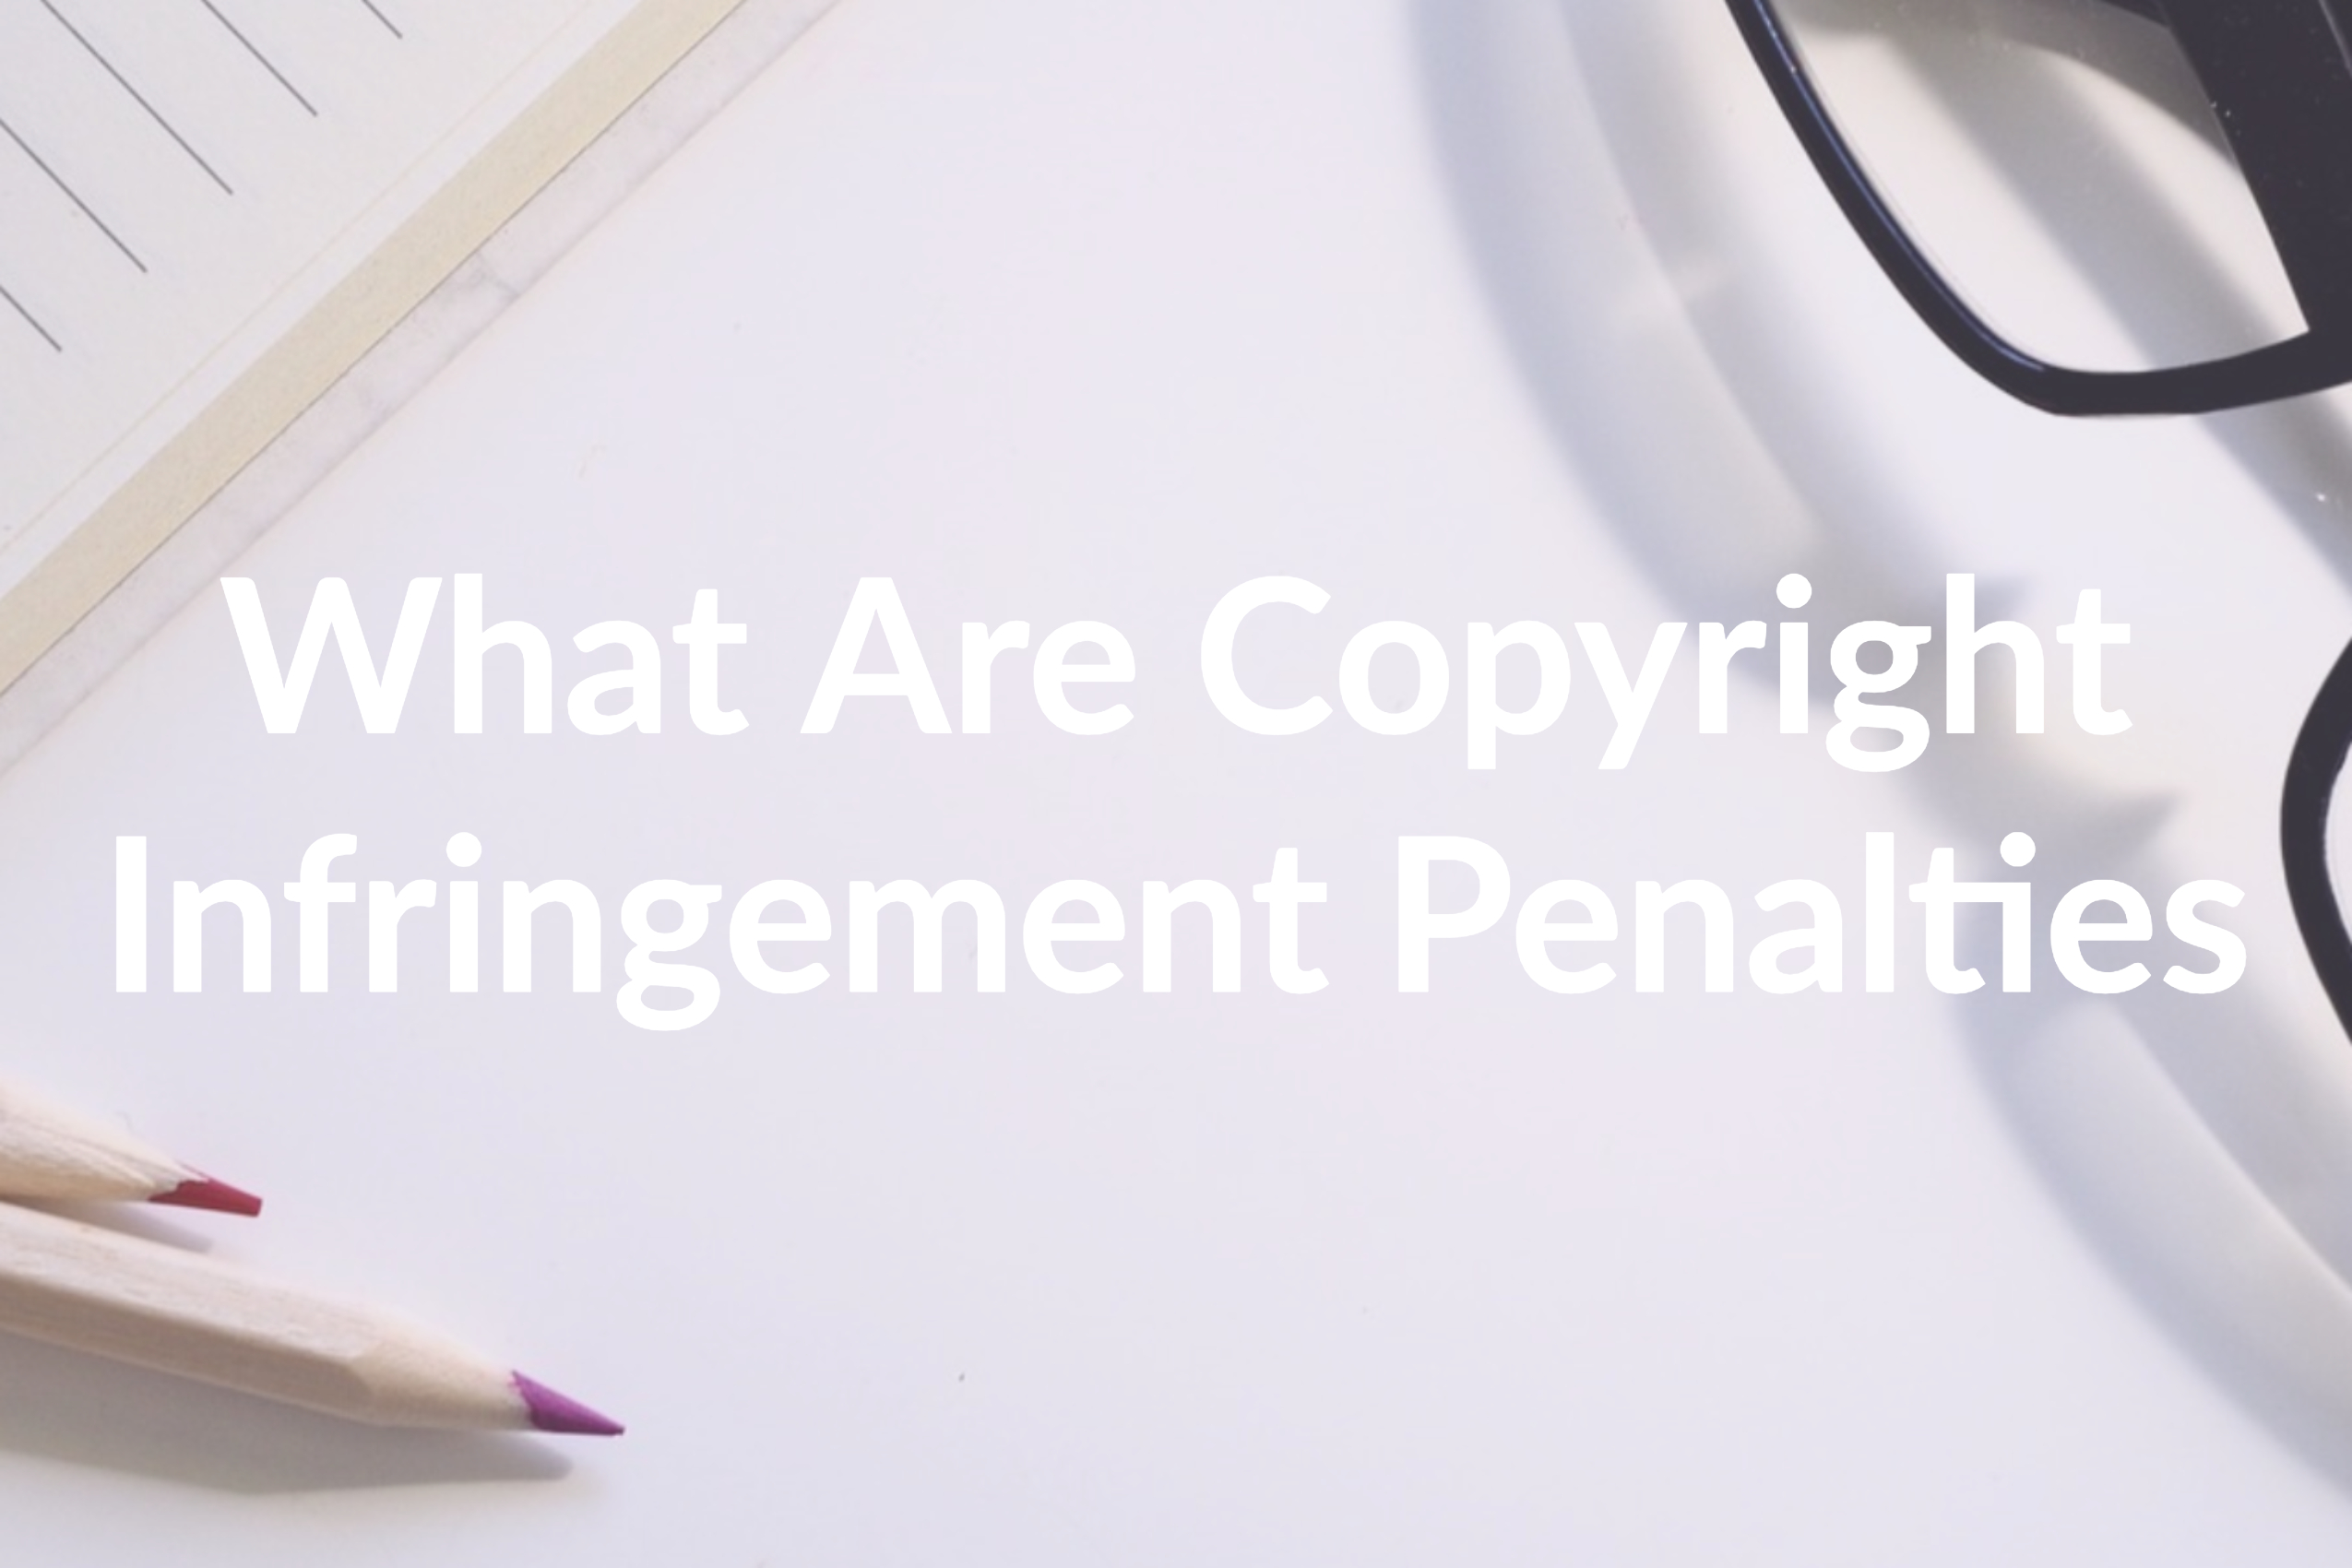 What Are Copyright Infringement Penalties and How to Avoid Them